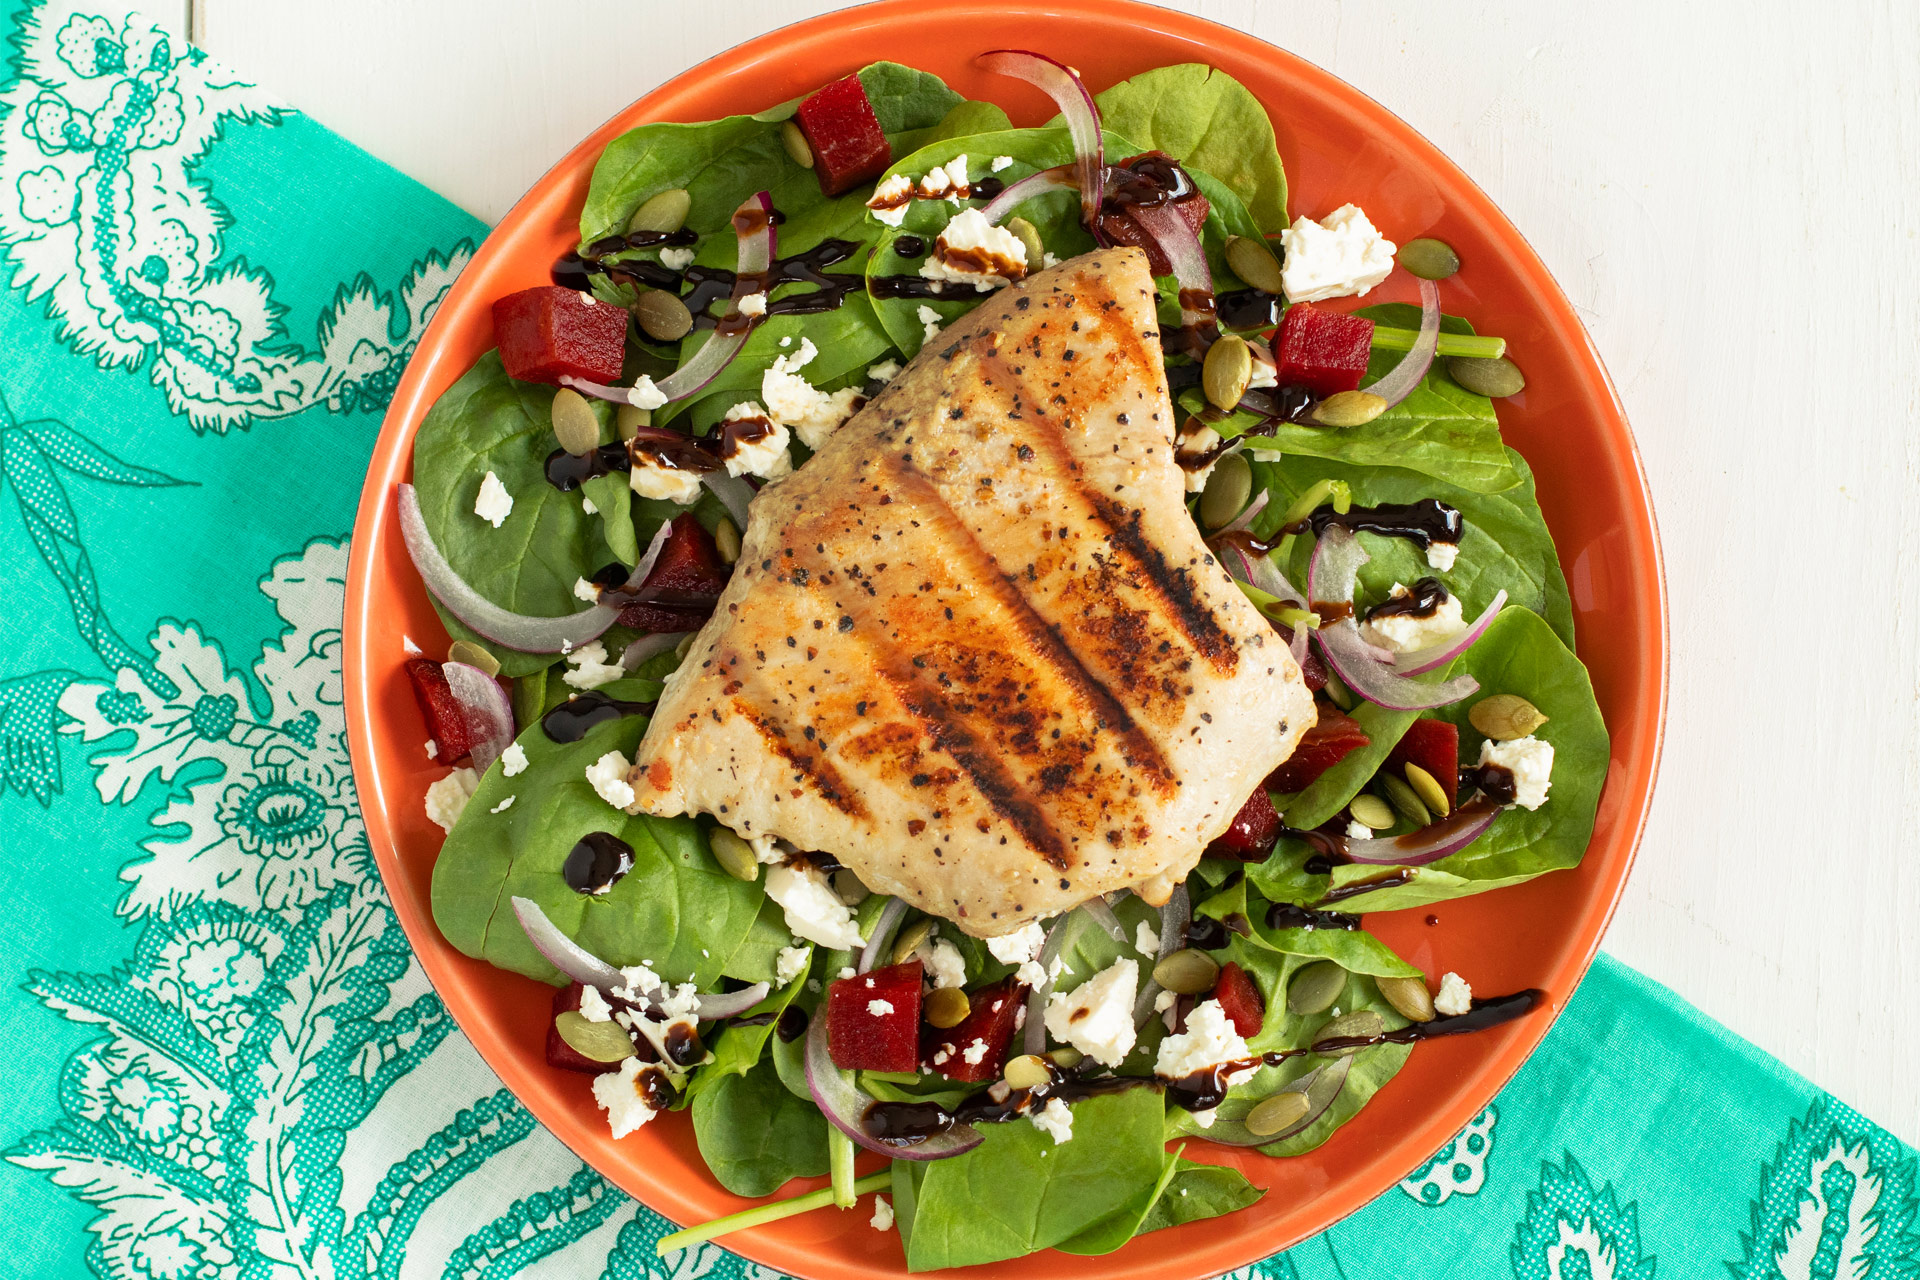 Spinach and Beet Tuna Salad